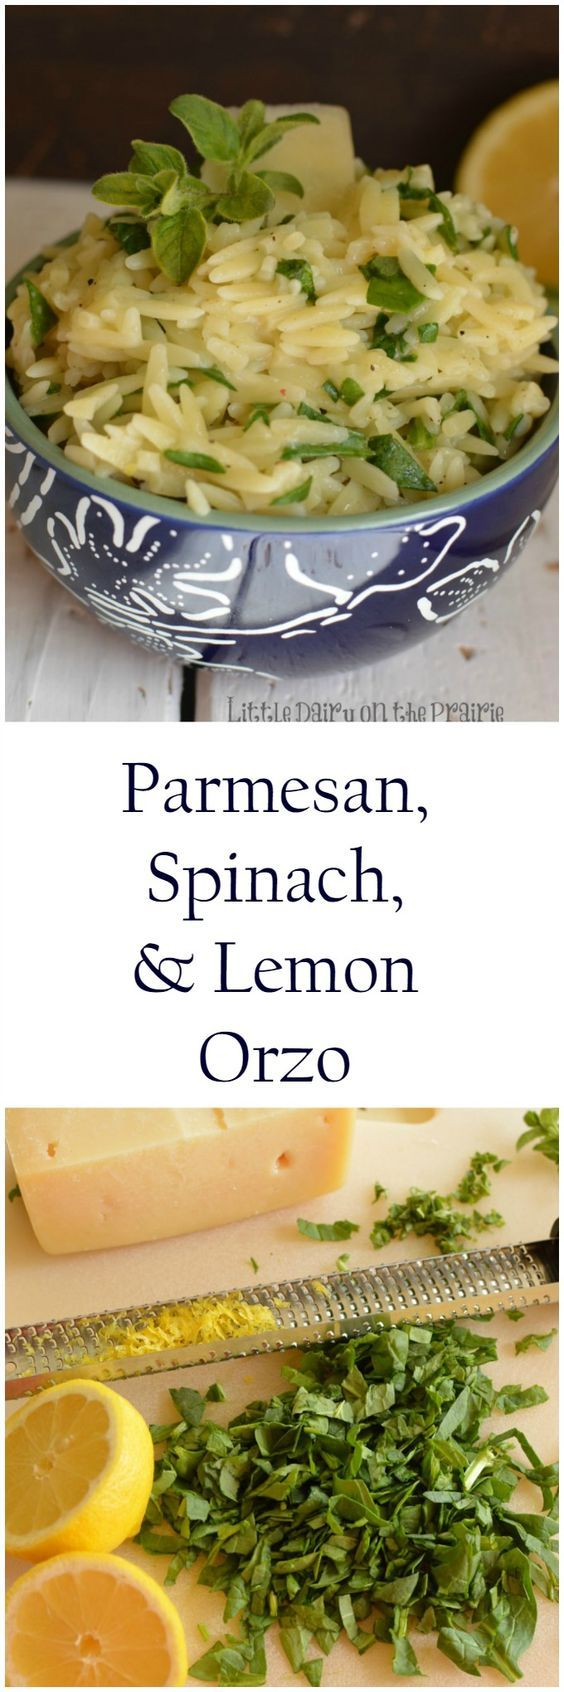 8/10 I can't even begin to tell you how much I love this PARMESAN, SPINACH, AND LEMON ORZO! The flavors are so clean and refreshing, it just the thing during the spring and summer! | Little Dairy on the Prairie                                                                                                                                                                                 More